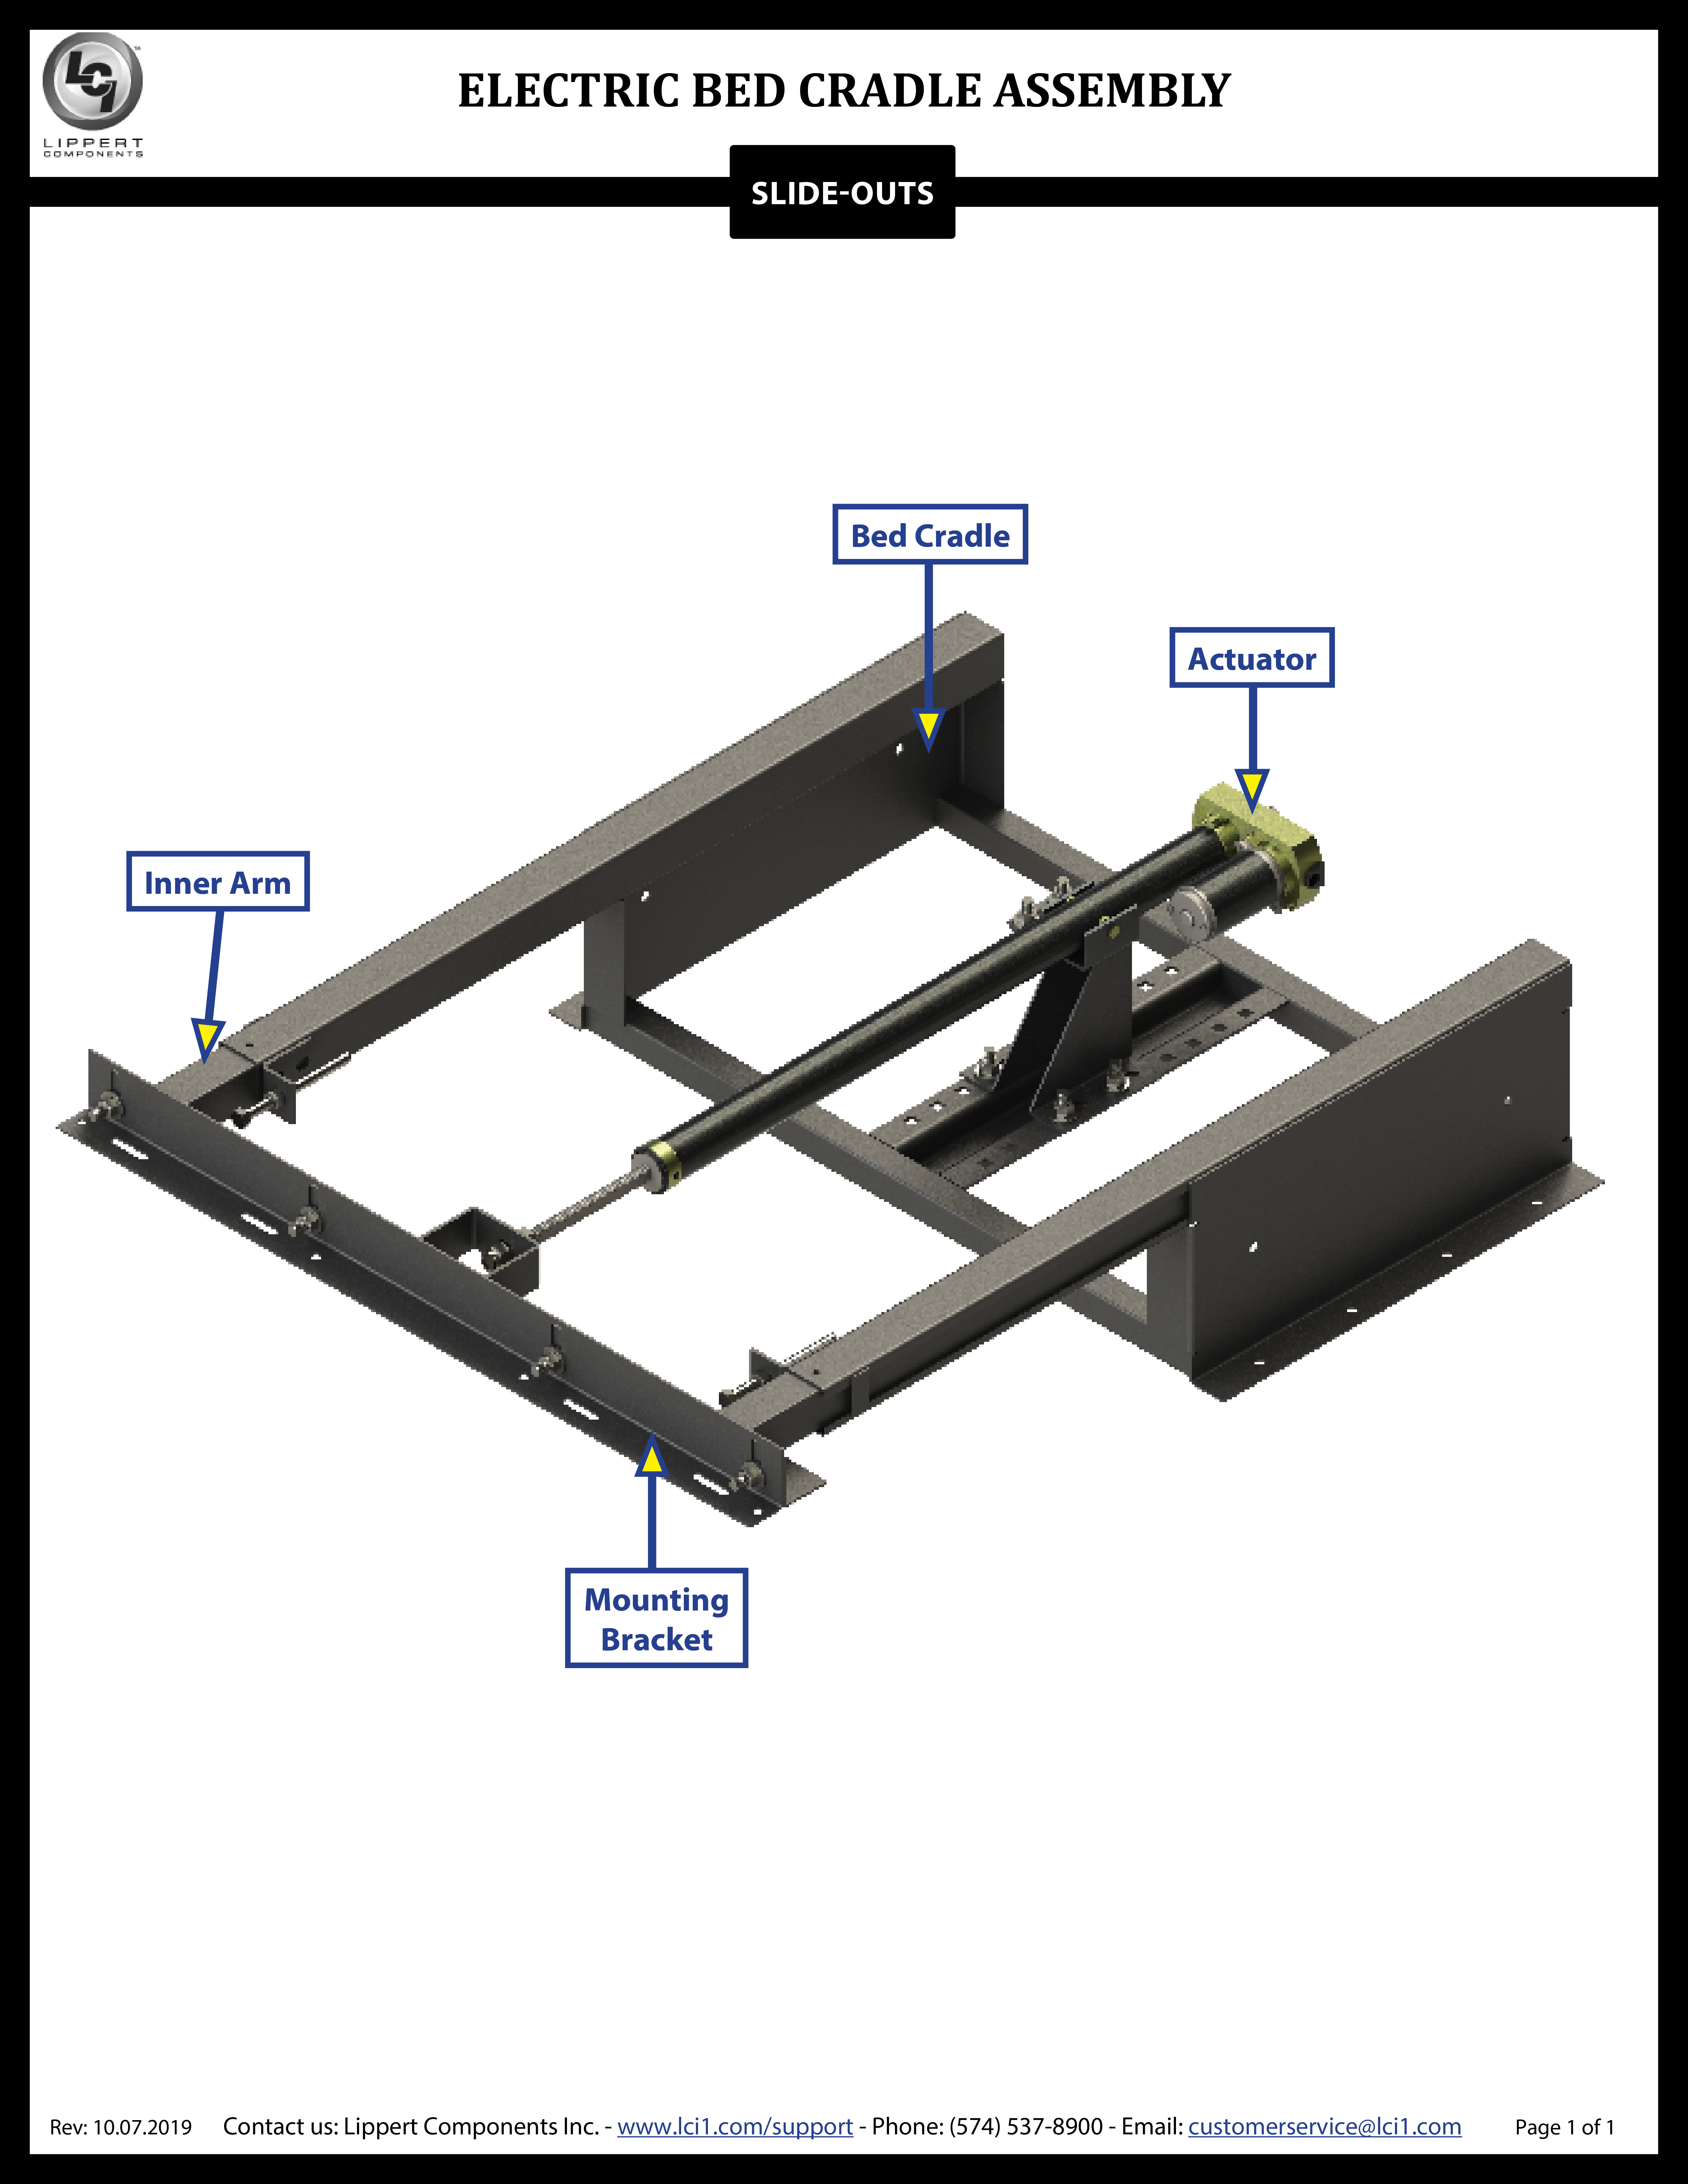 Electric Bed Cradle Slide-Out Assembly